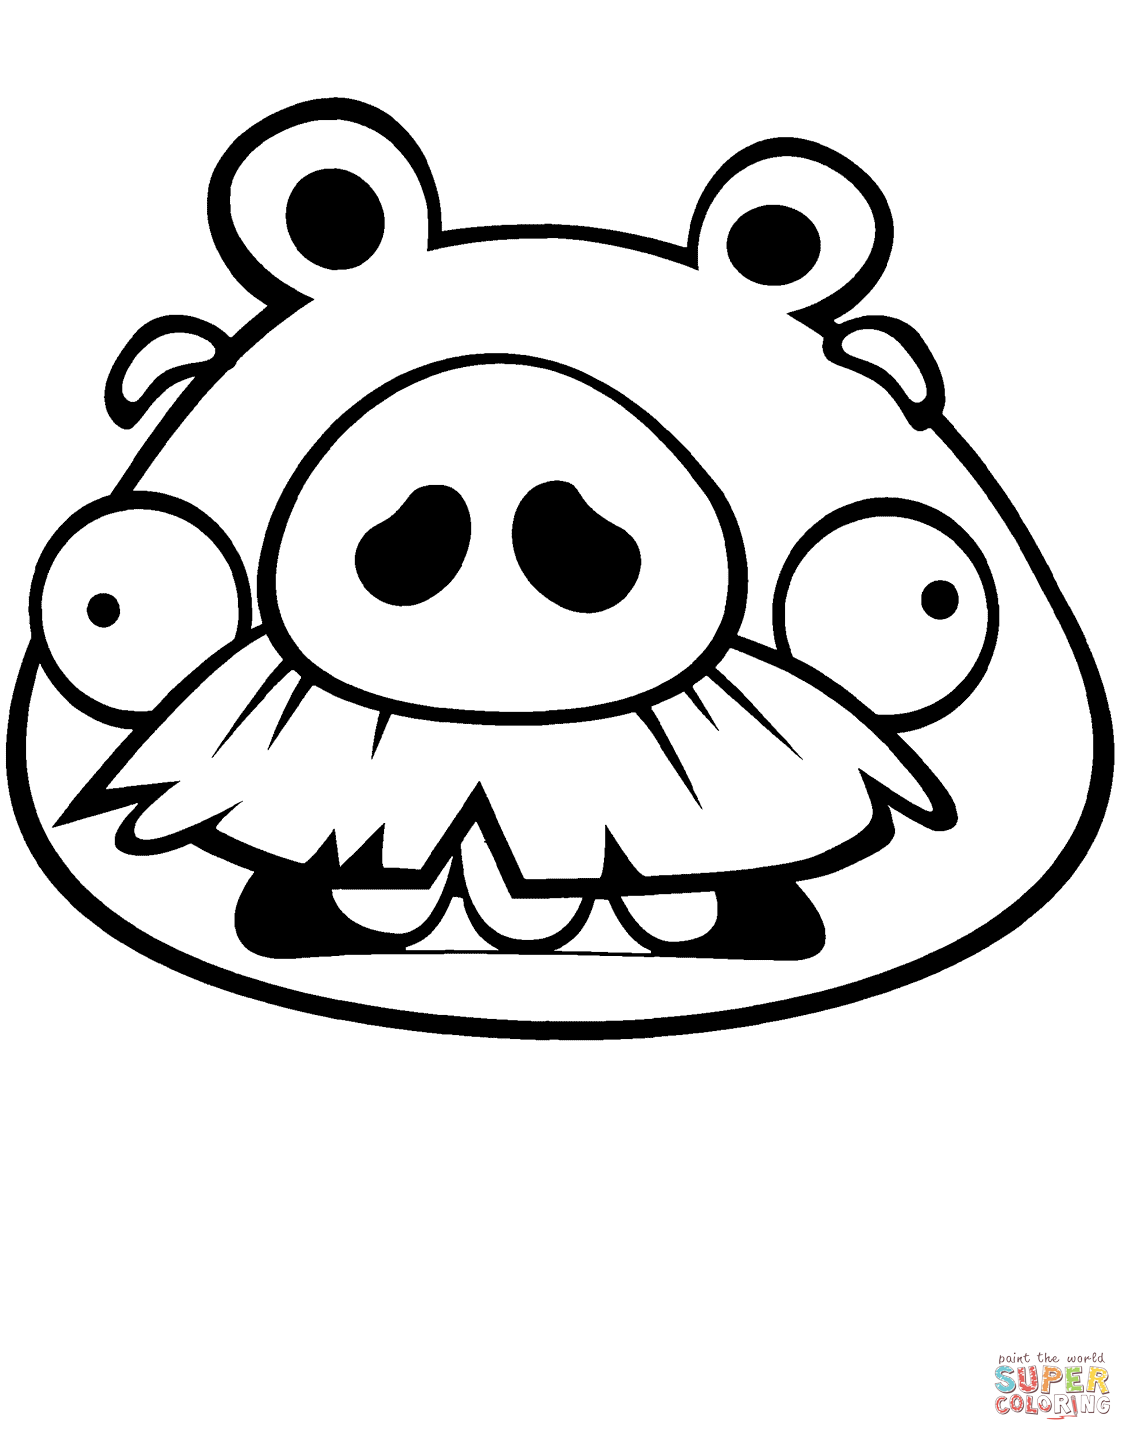 Foreman Pig Coloring Page Free Printable Coloring Pages